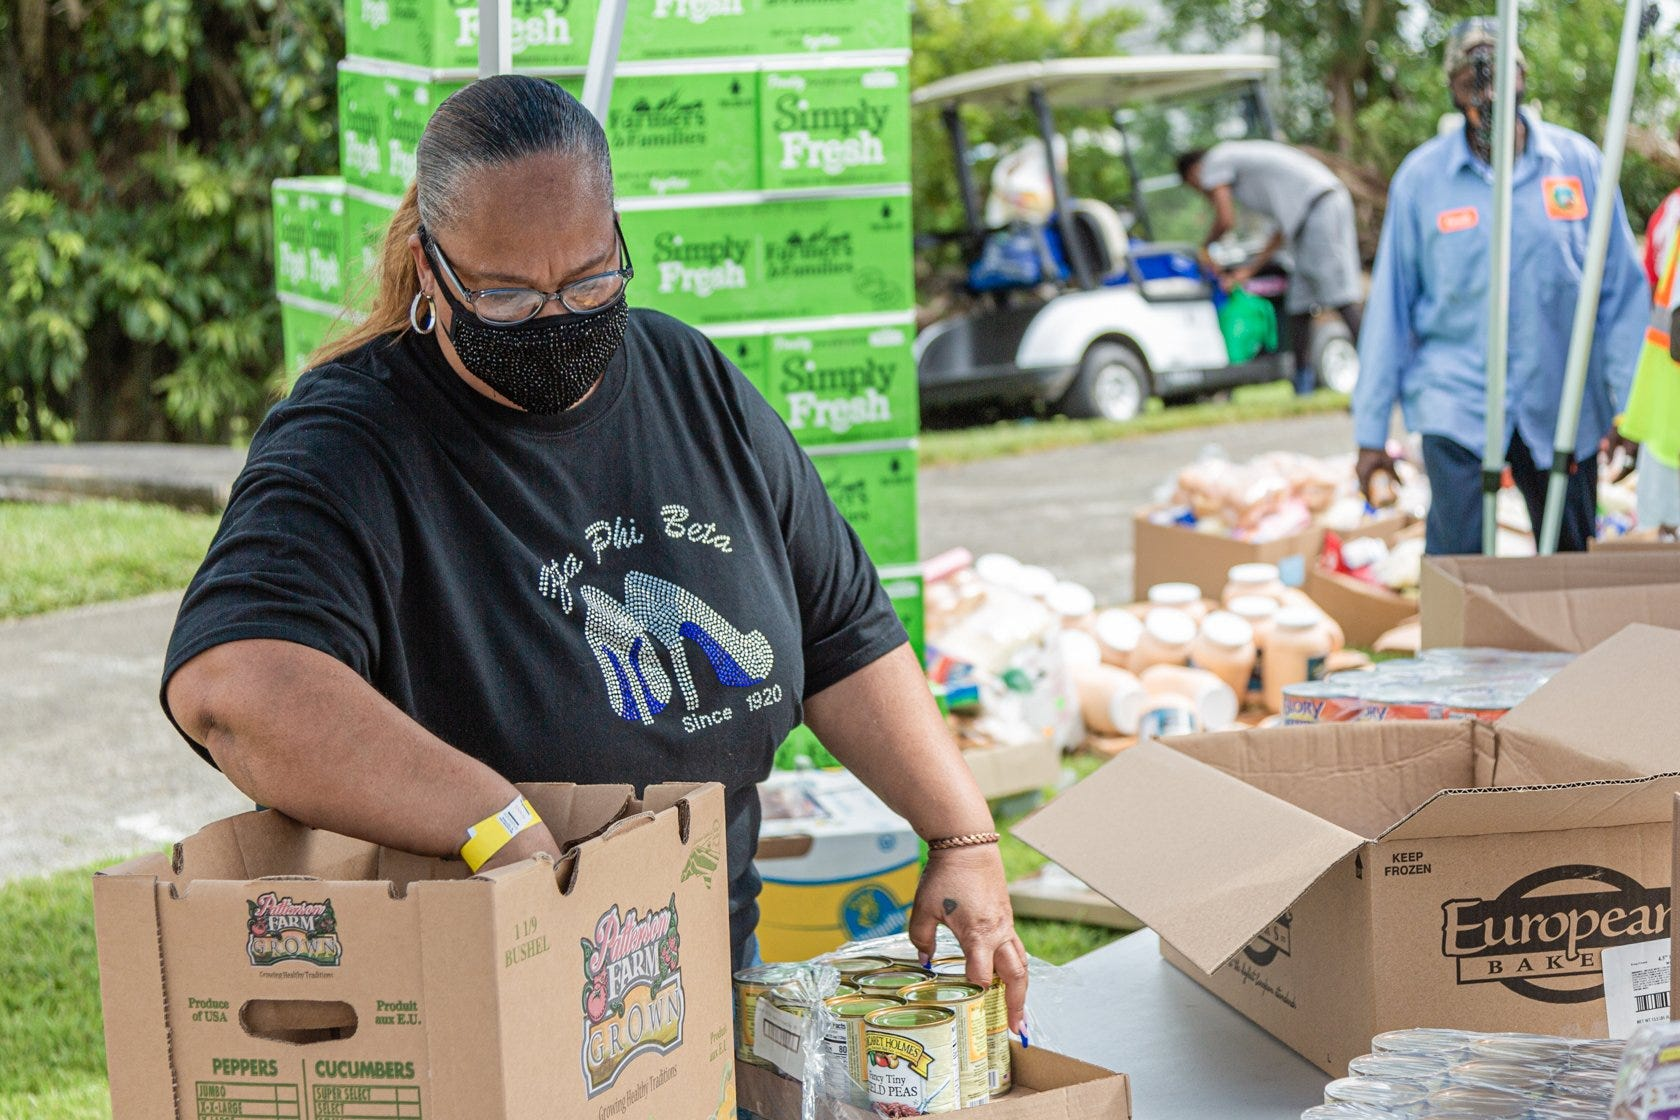 Tammy Jackson Moore, a community organizer and leader and founder of Guardians of the Glades, at New Birth Deliverance Church in Belle Glade, Friday, August 21, 2020. Moore's organization was distributing food to those in need in the community.